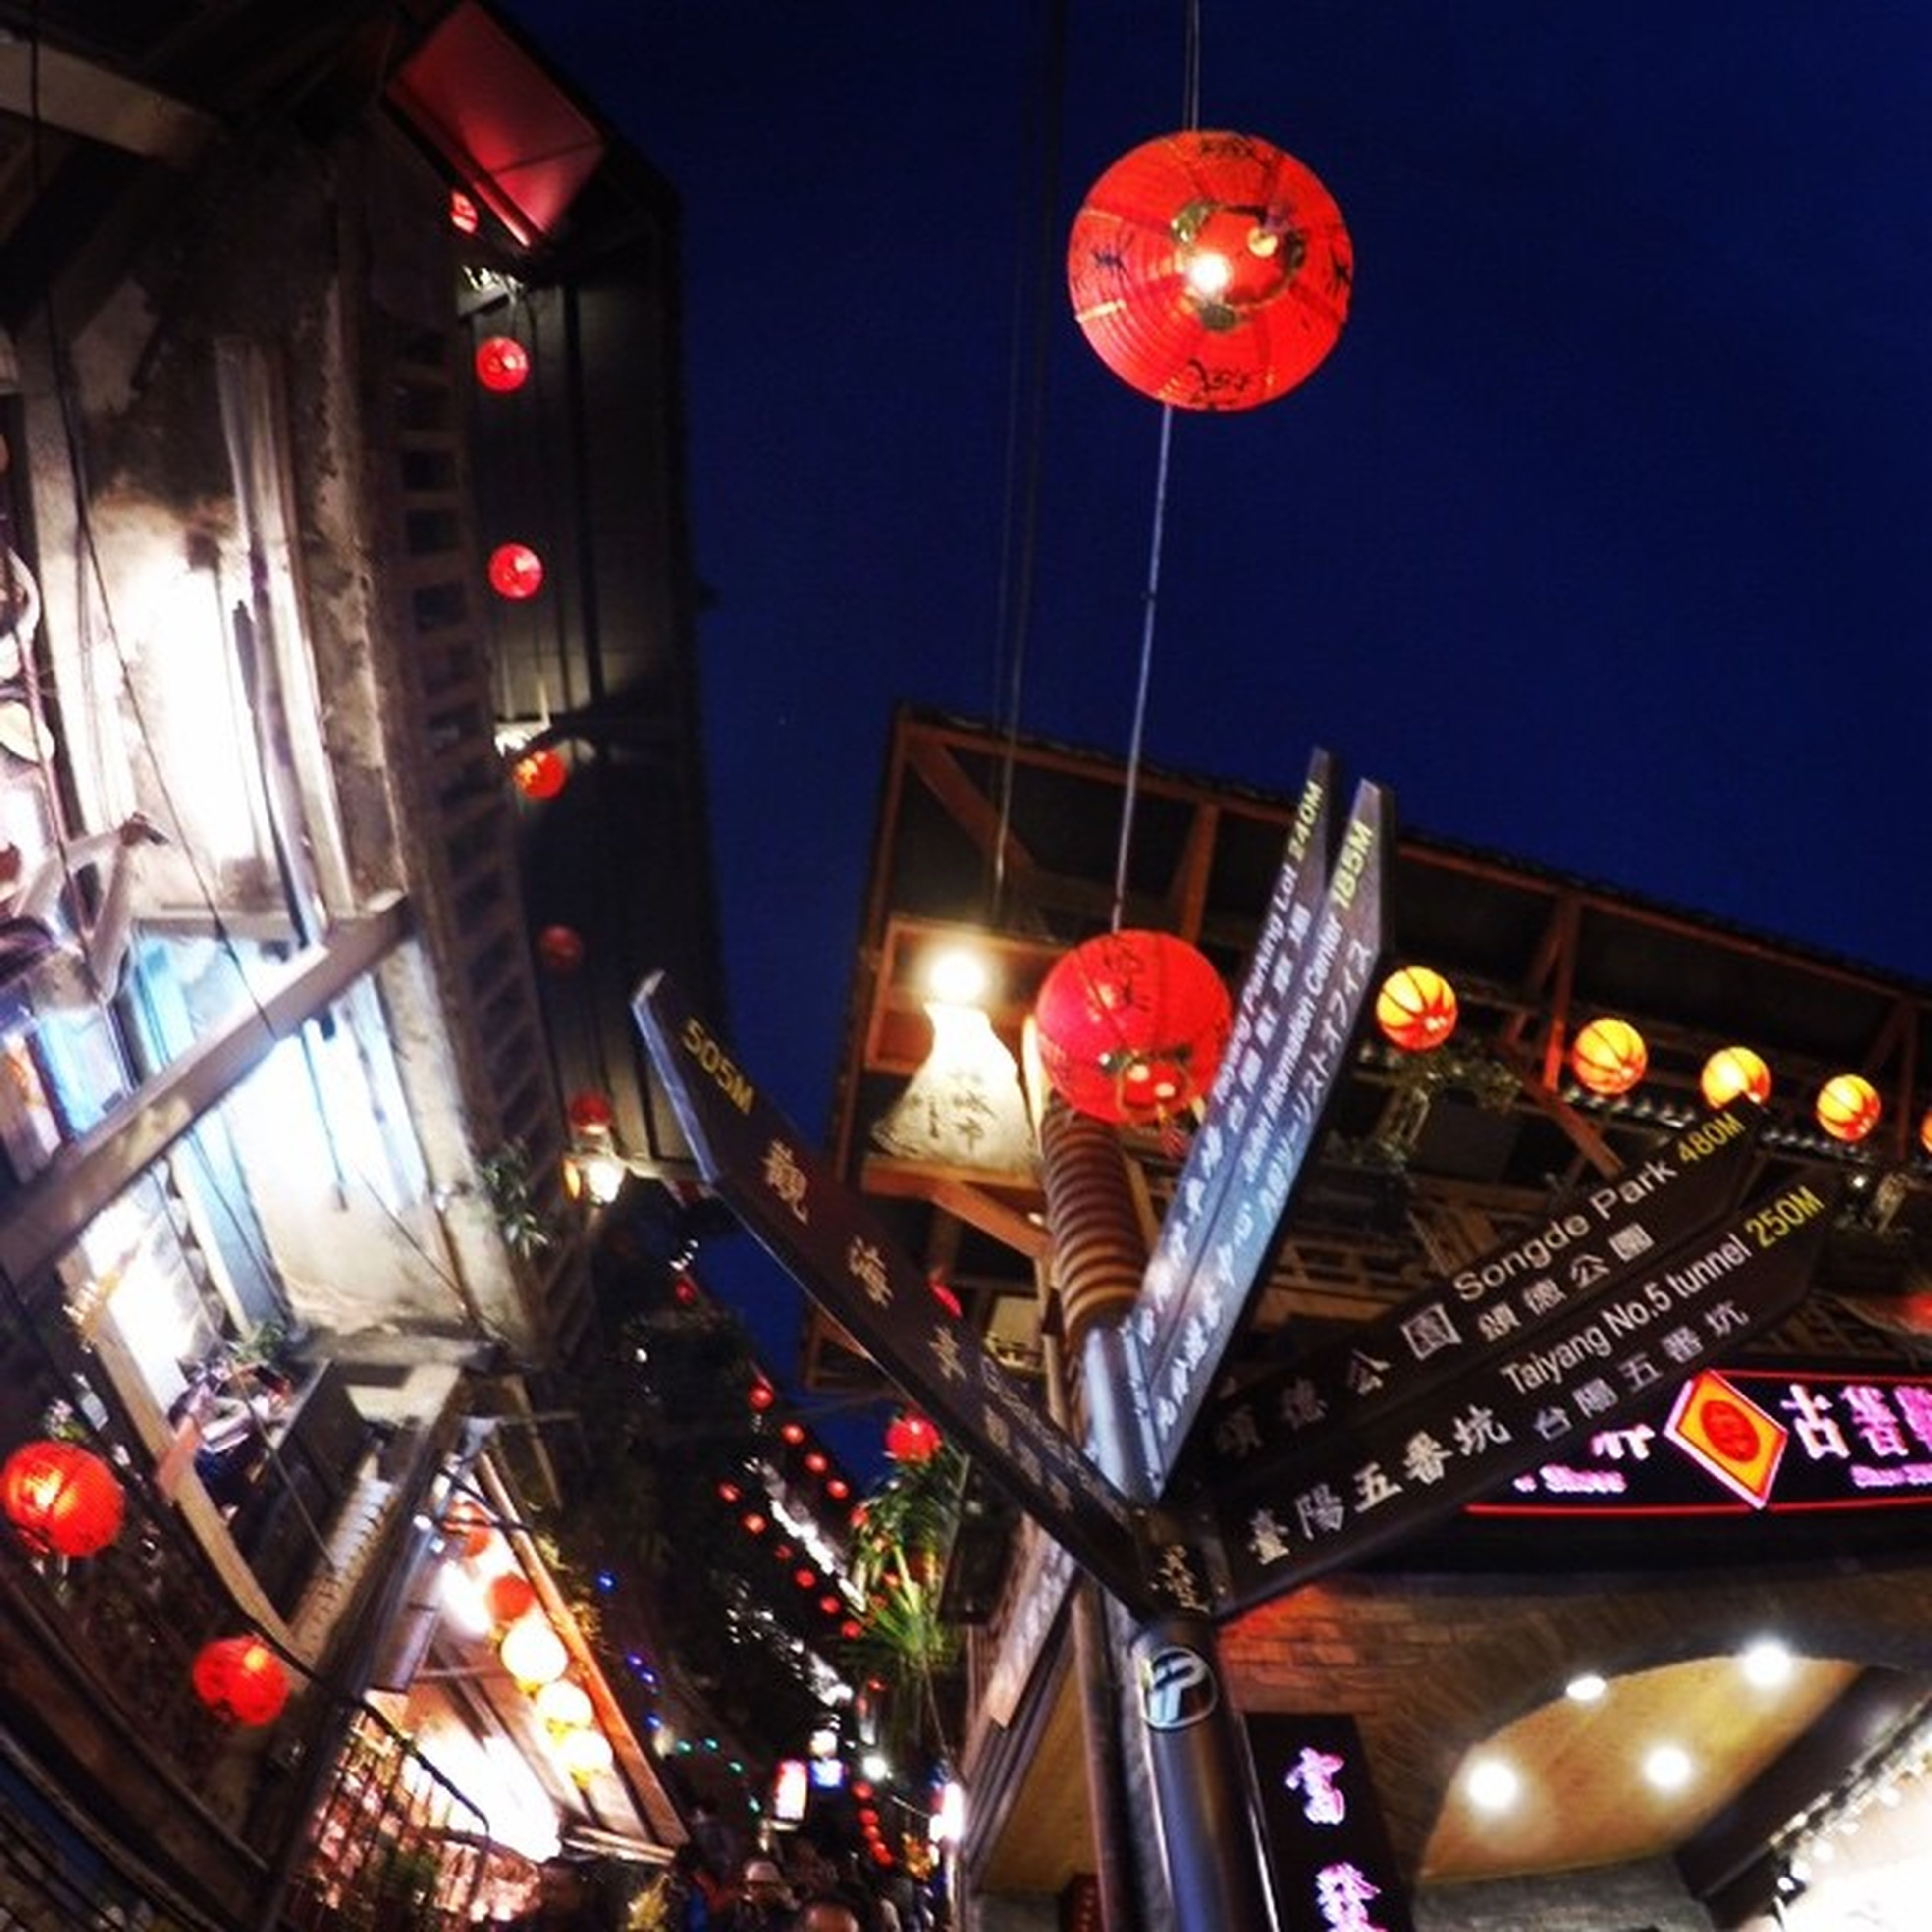 illuminated, low angle view, lighting equipment, night, decoration, lantern, architecture, built structure, hanging, multi colored, celebration, red, building exterior, chinese lantern, ceiling, in a row, electric light, indoors, no people, street light